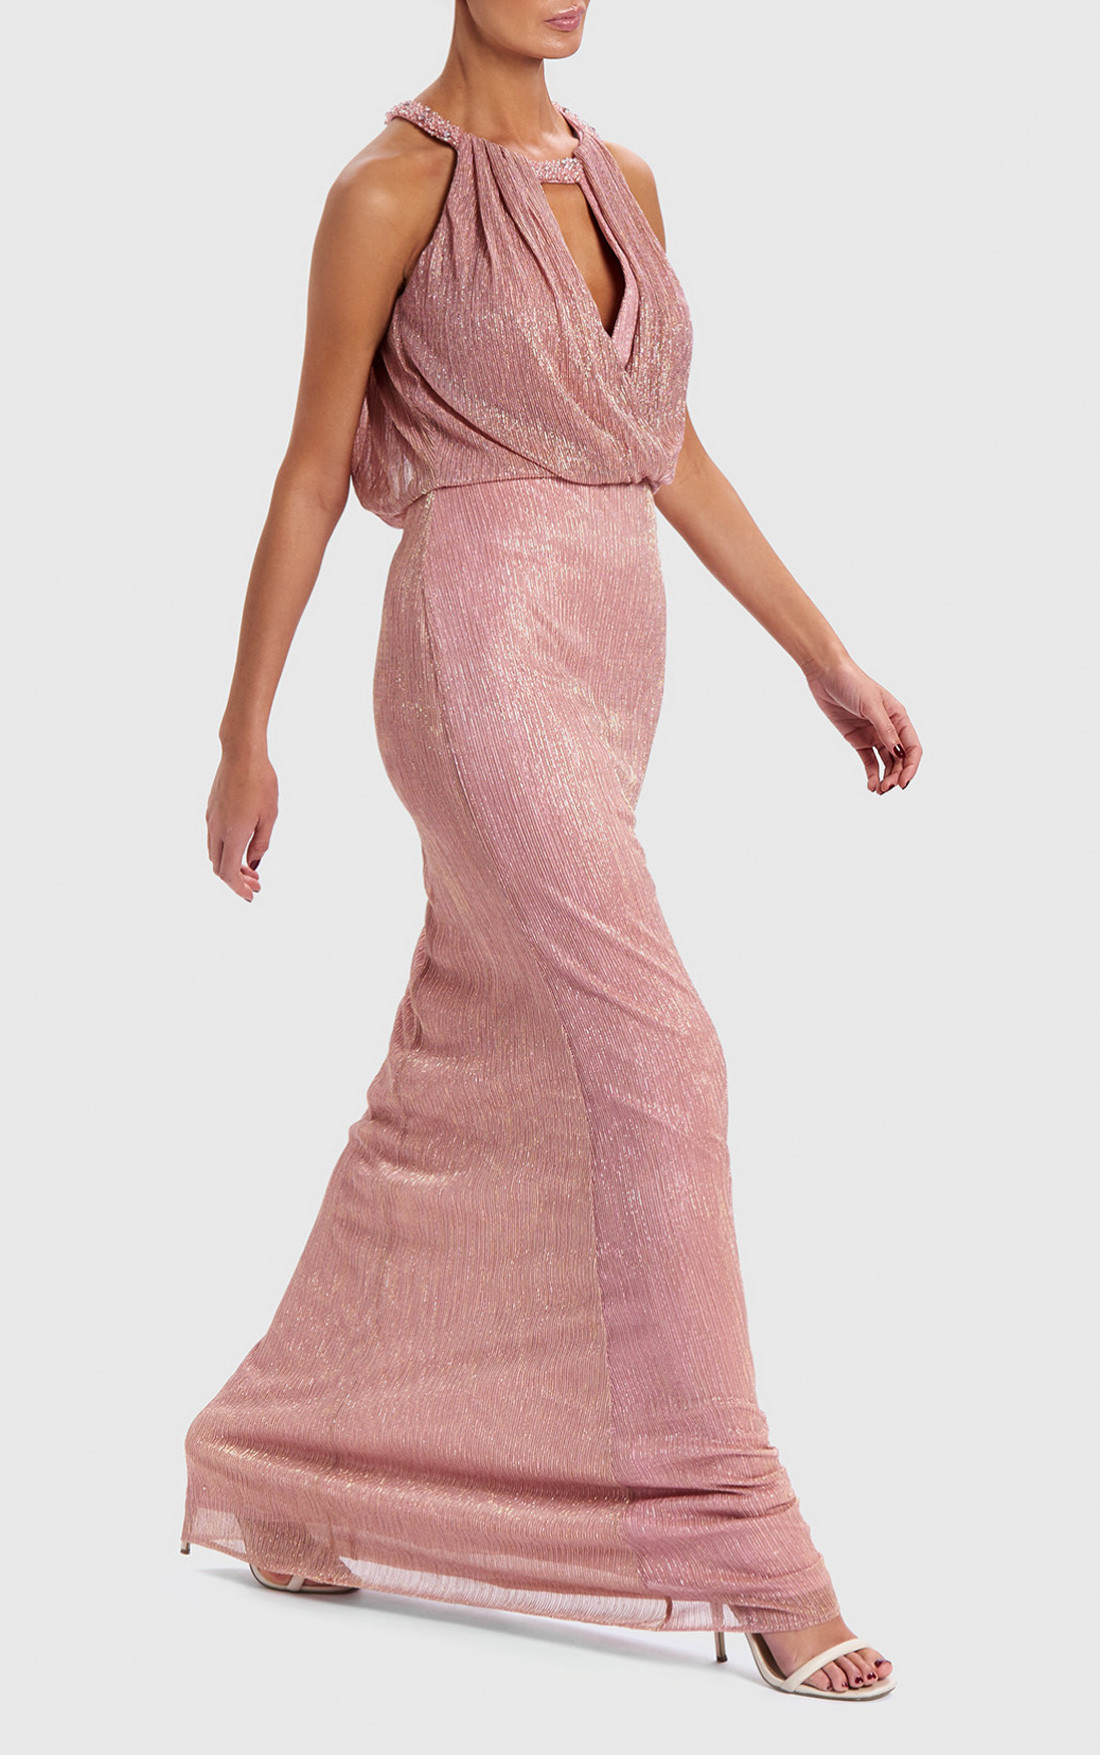 Forever Unique - Shimmer Nude Metallic Draped Maxi Dress (AB0922)